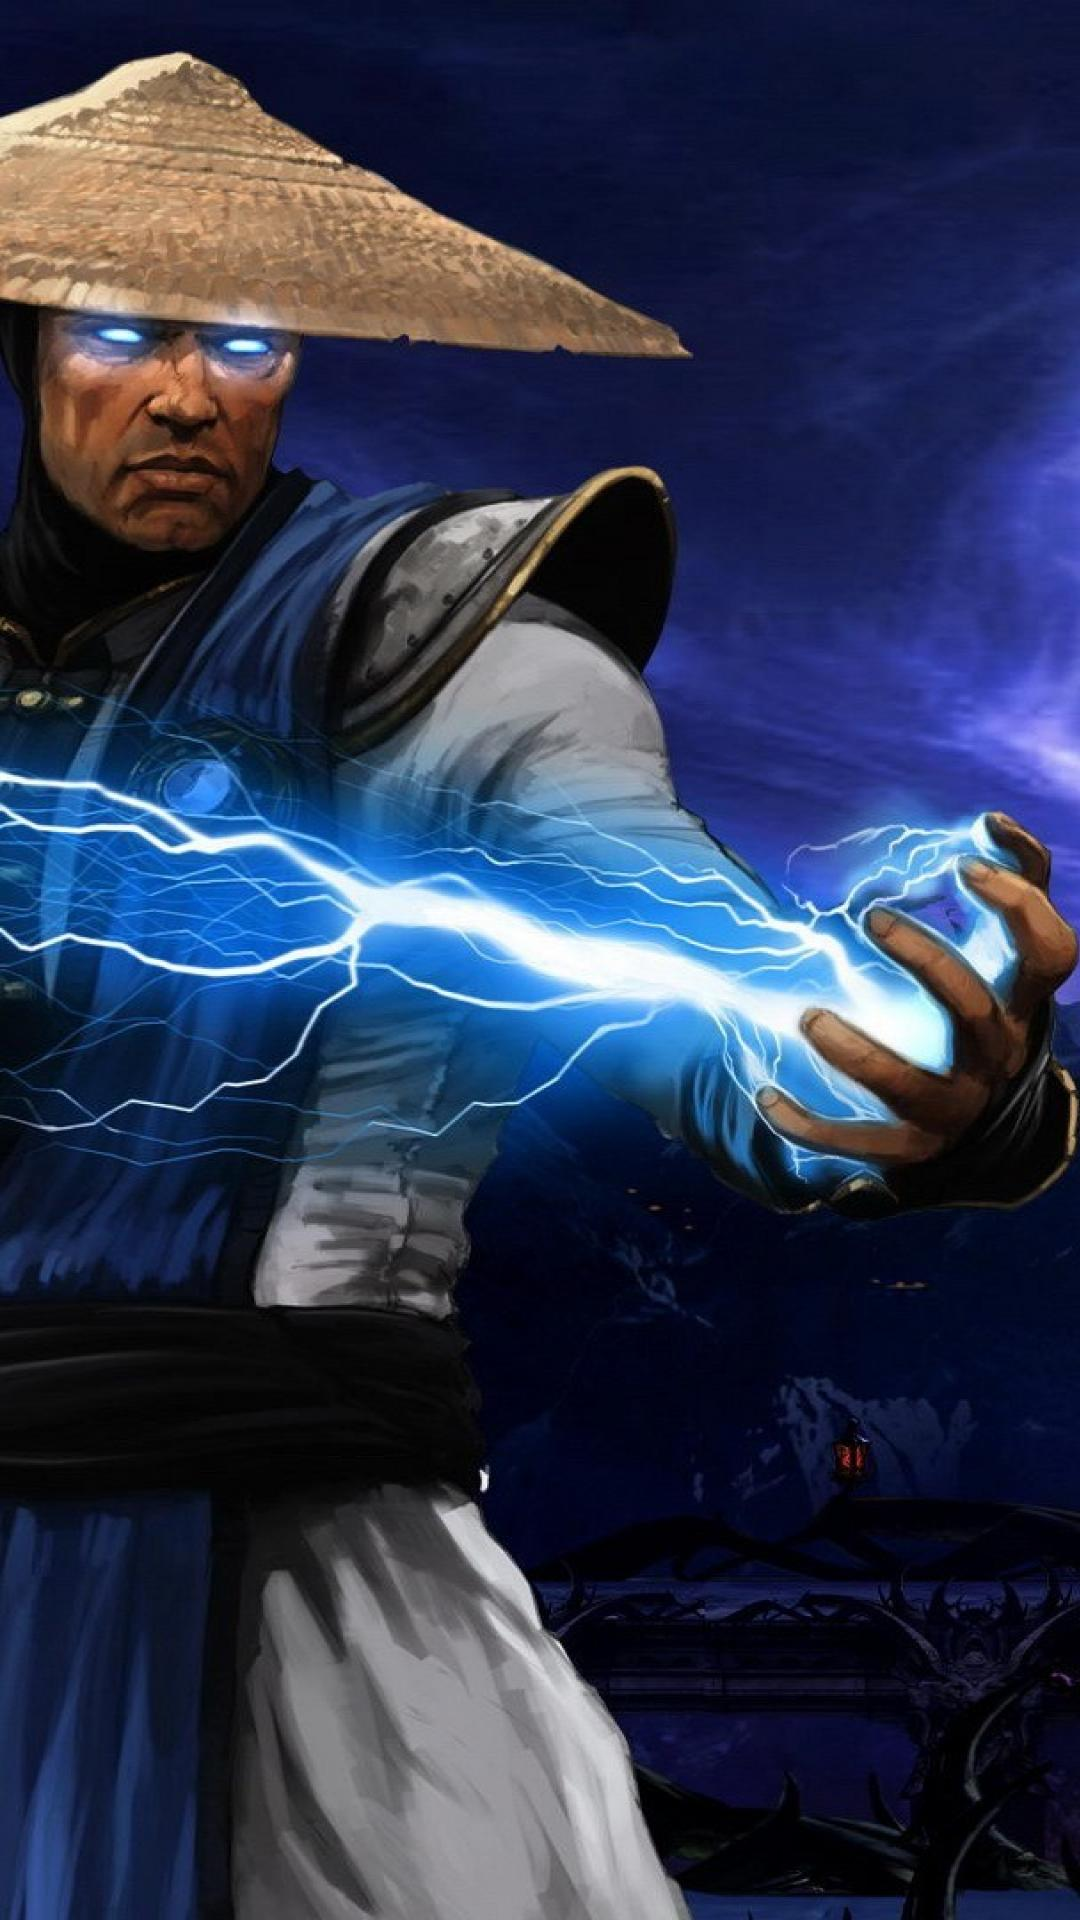 raiden mortal kombat x wallpaper wallpapersafari